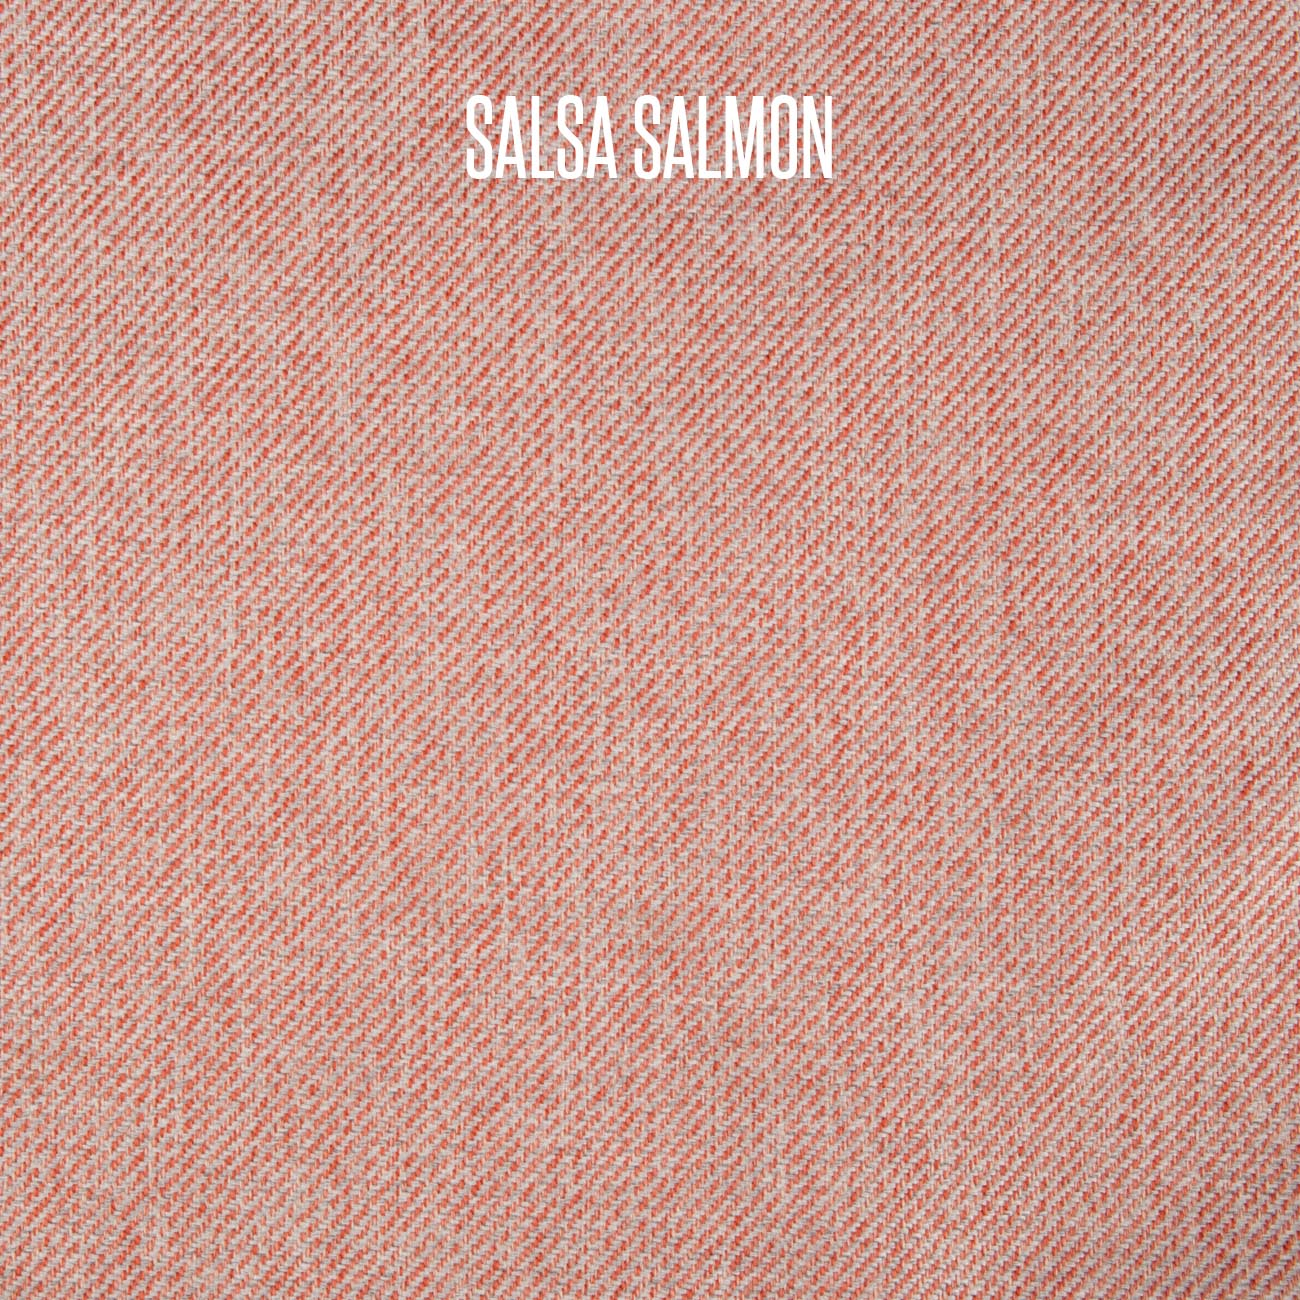 salsa-salmon-swatch